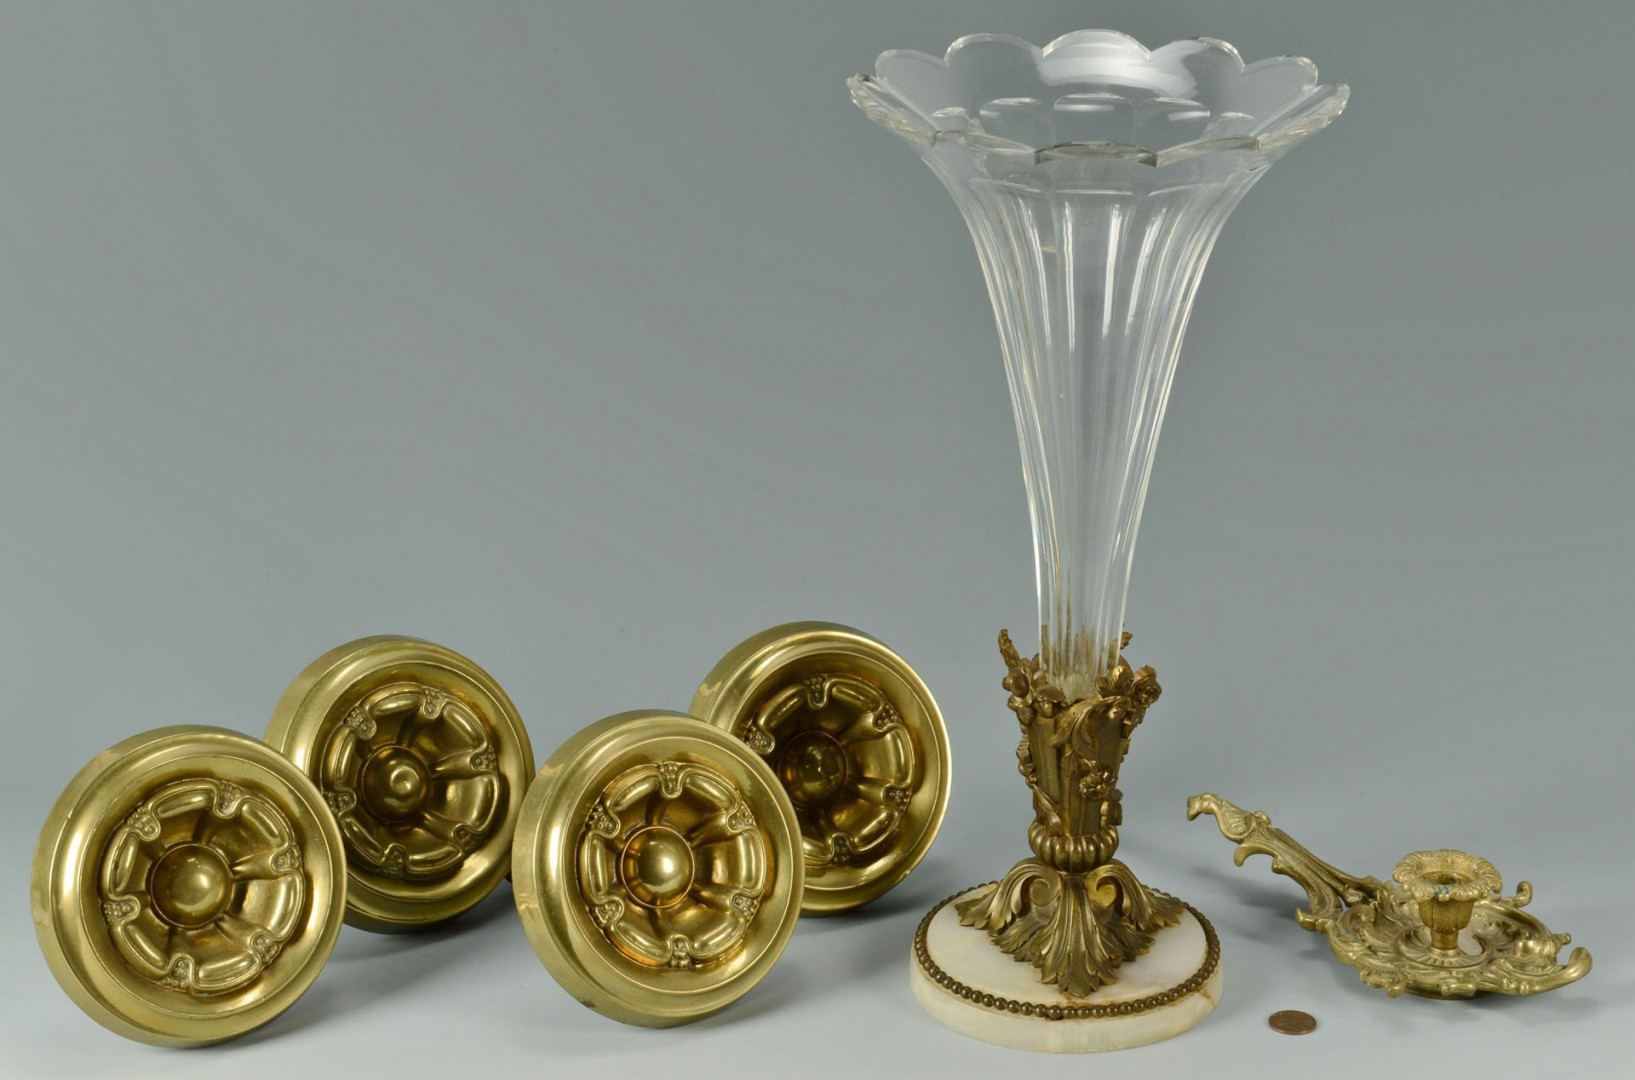 4 Curtain Tiebacks,  Candle Holder & Vase